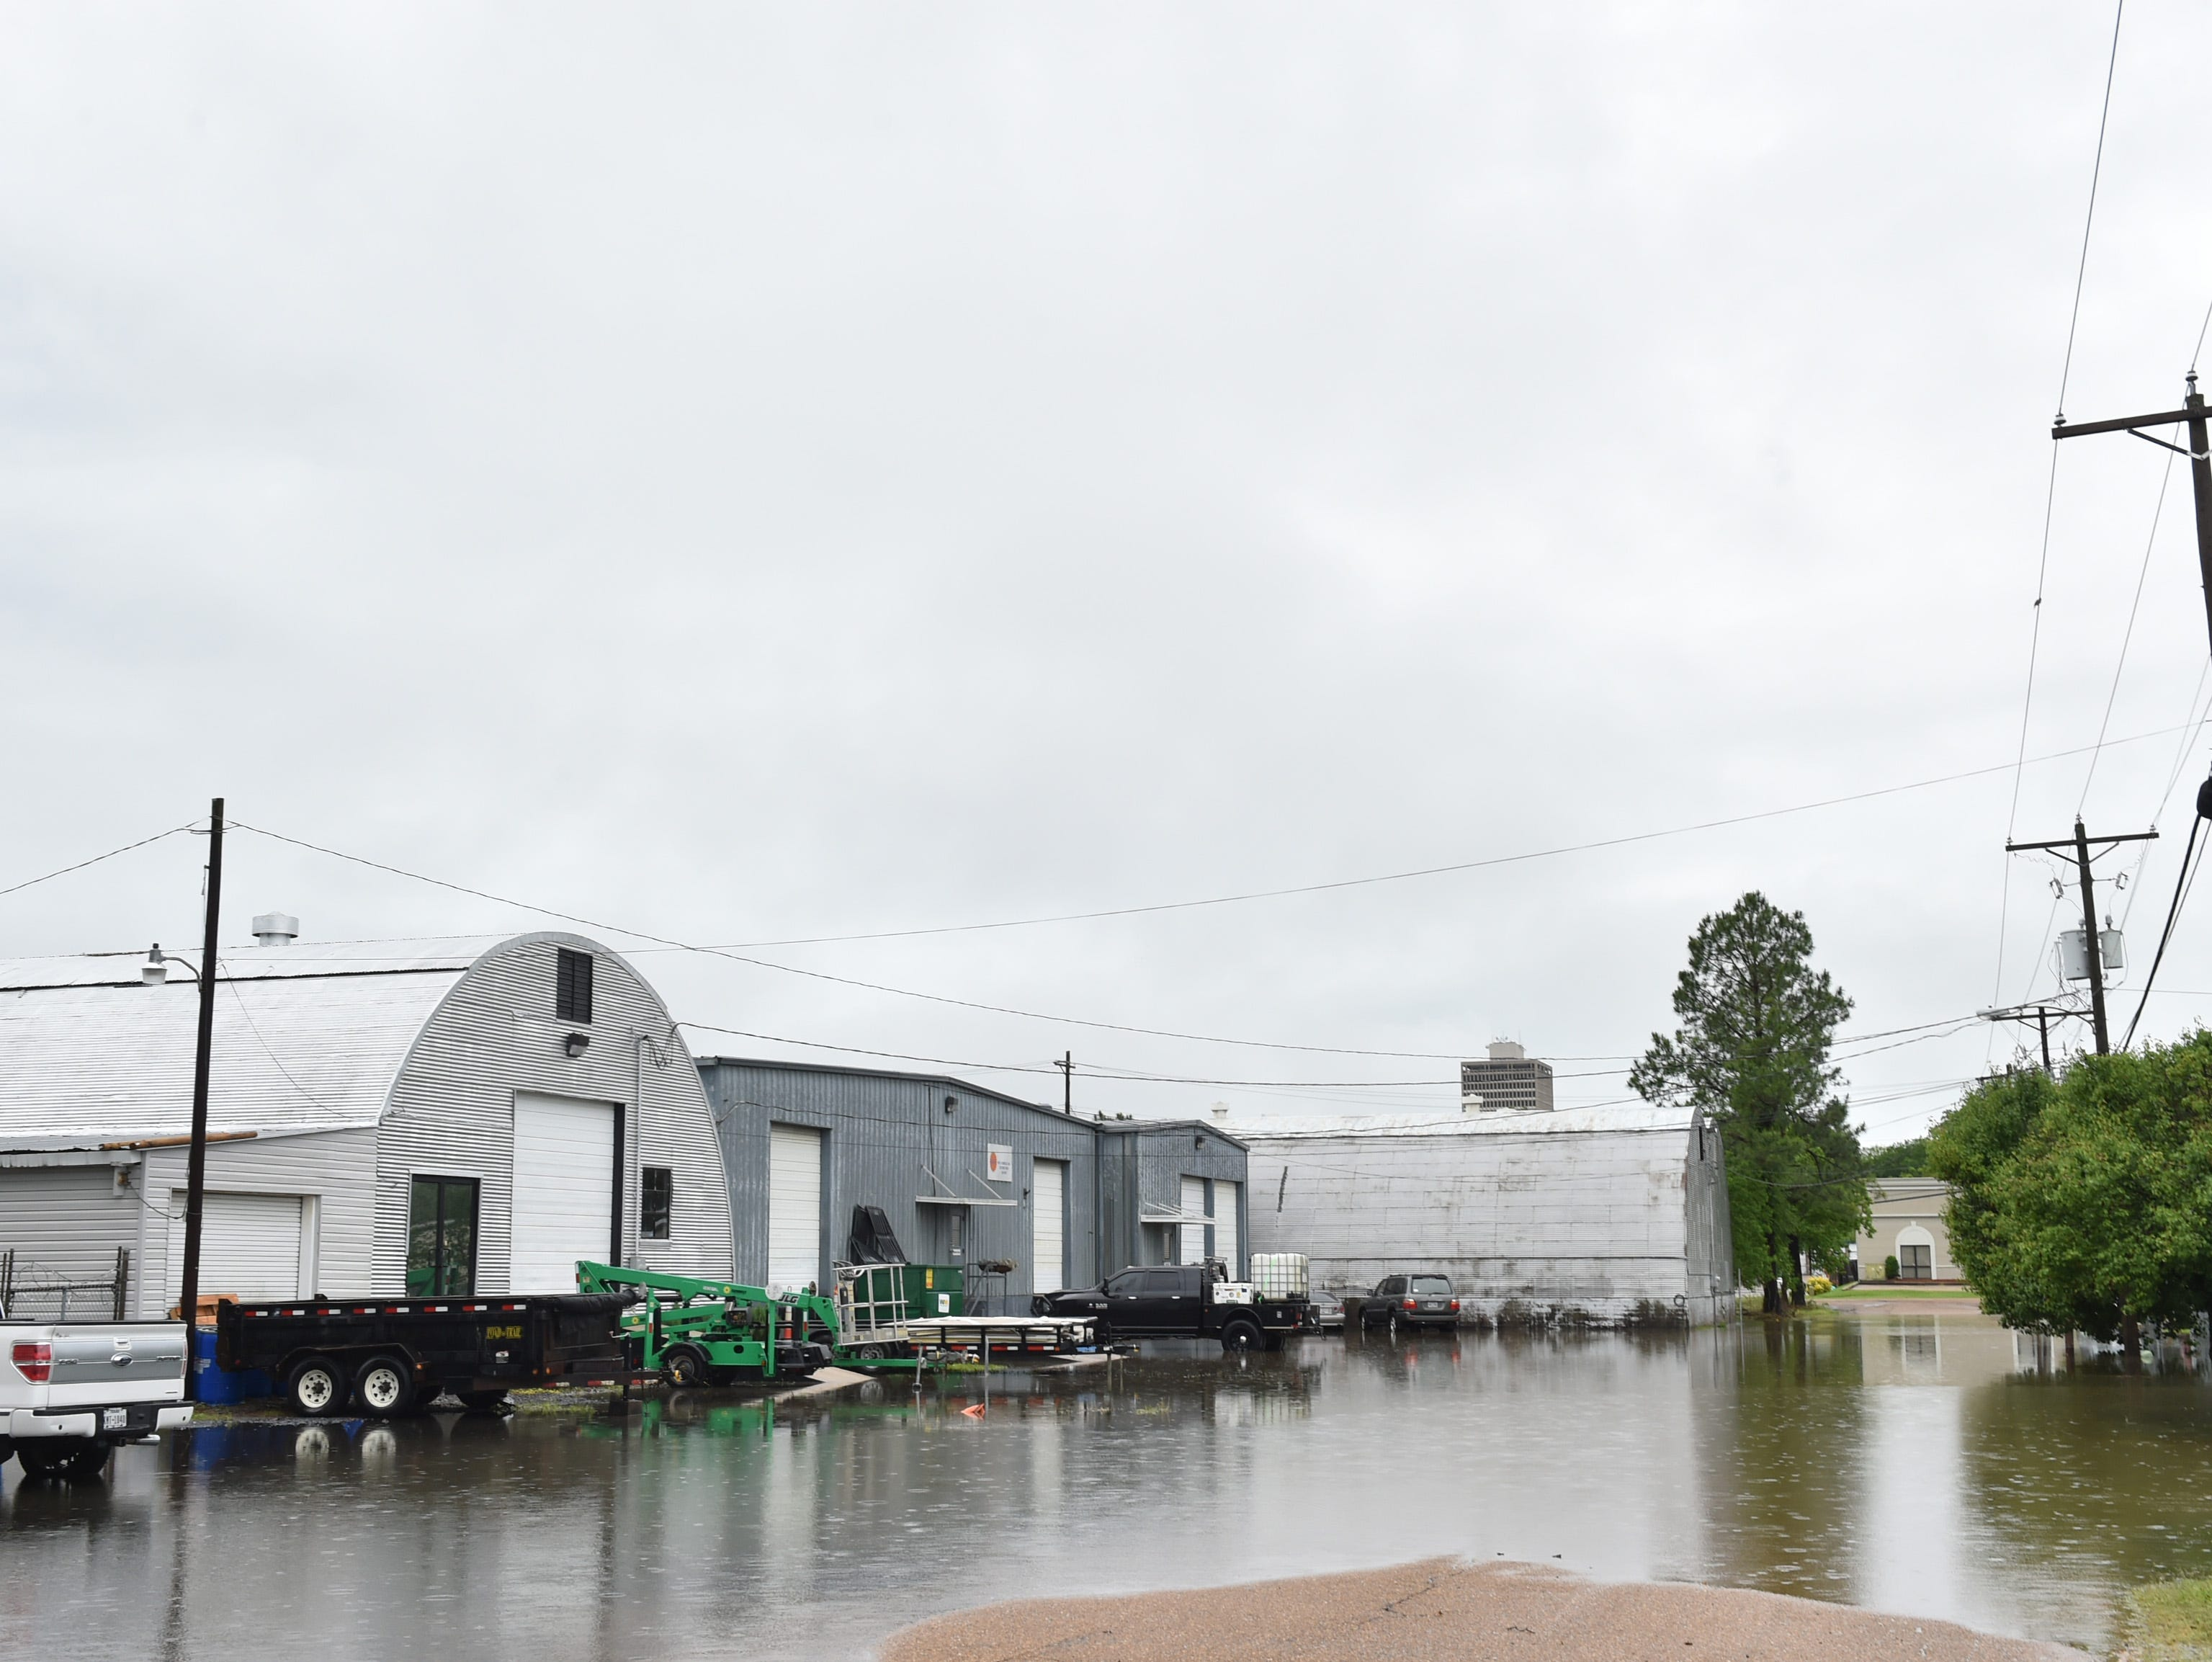 Flooding overtook sections of Vine street between Lamar and Monroe streets in Jackson near the High street exit of I-55. Thursday, May 9, 2019.